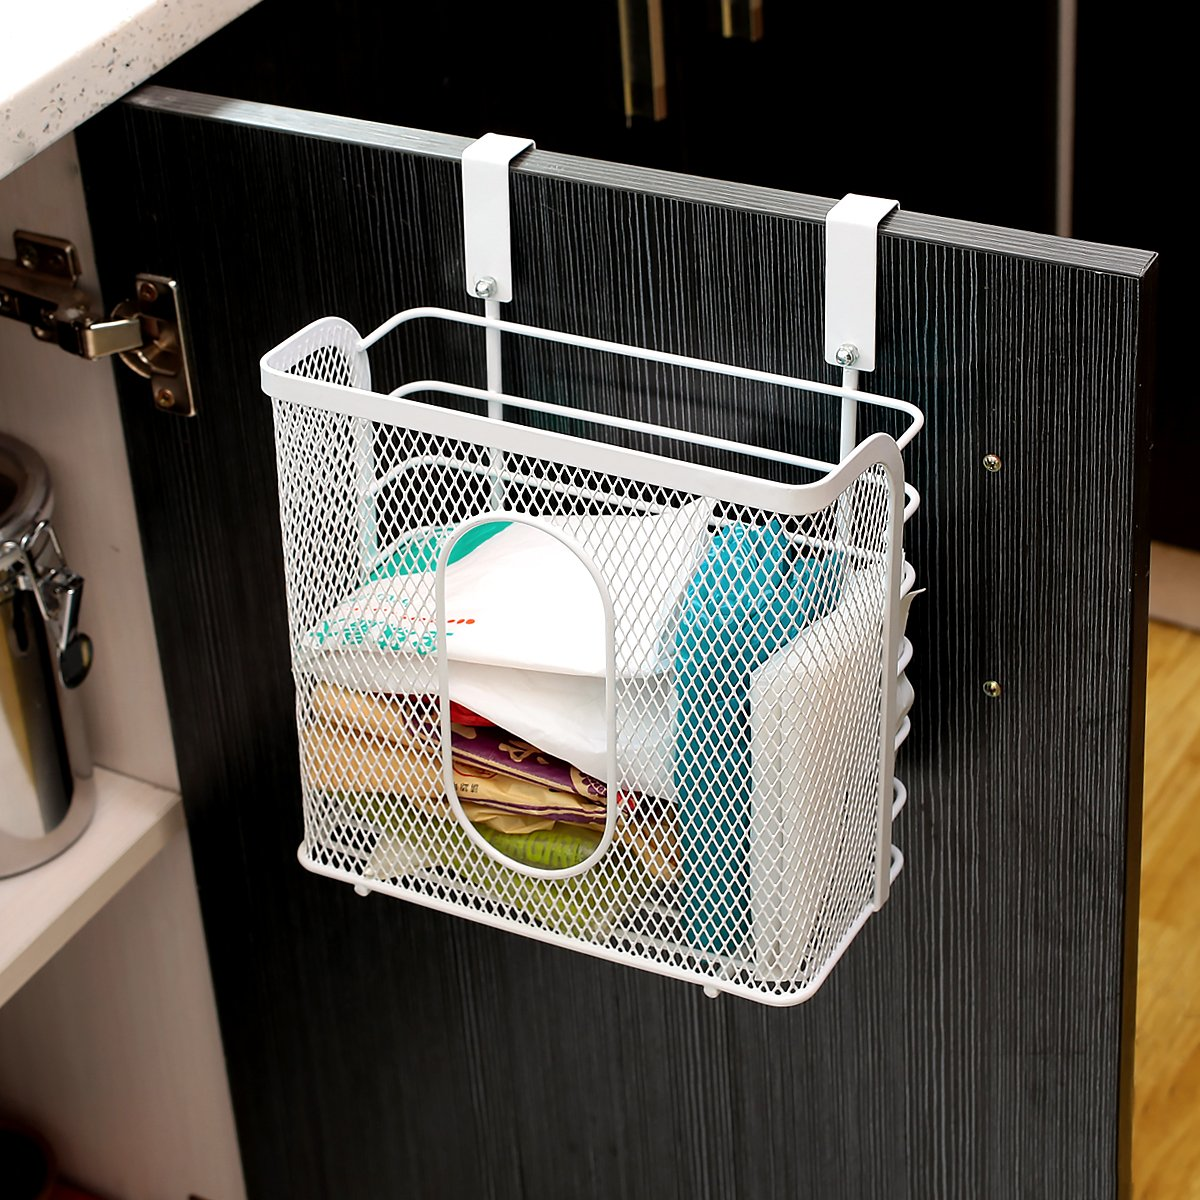 Creatwo Door Grid Basket Hanging Basket Metal Mesh Caddy Baskets for Kitchen Cabinet Storage, White CT-HK-0035